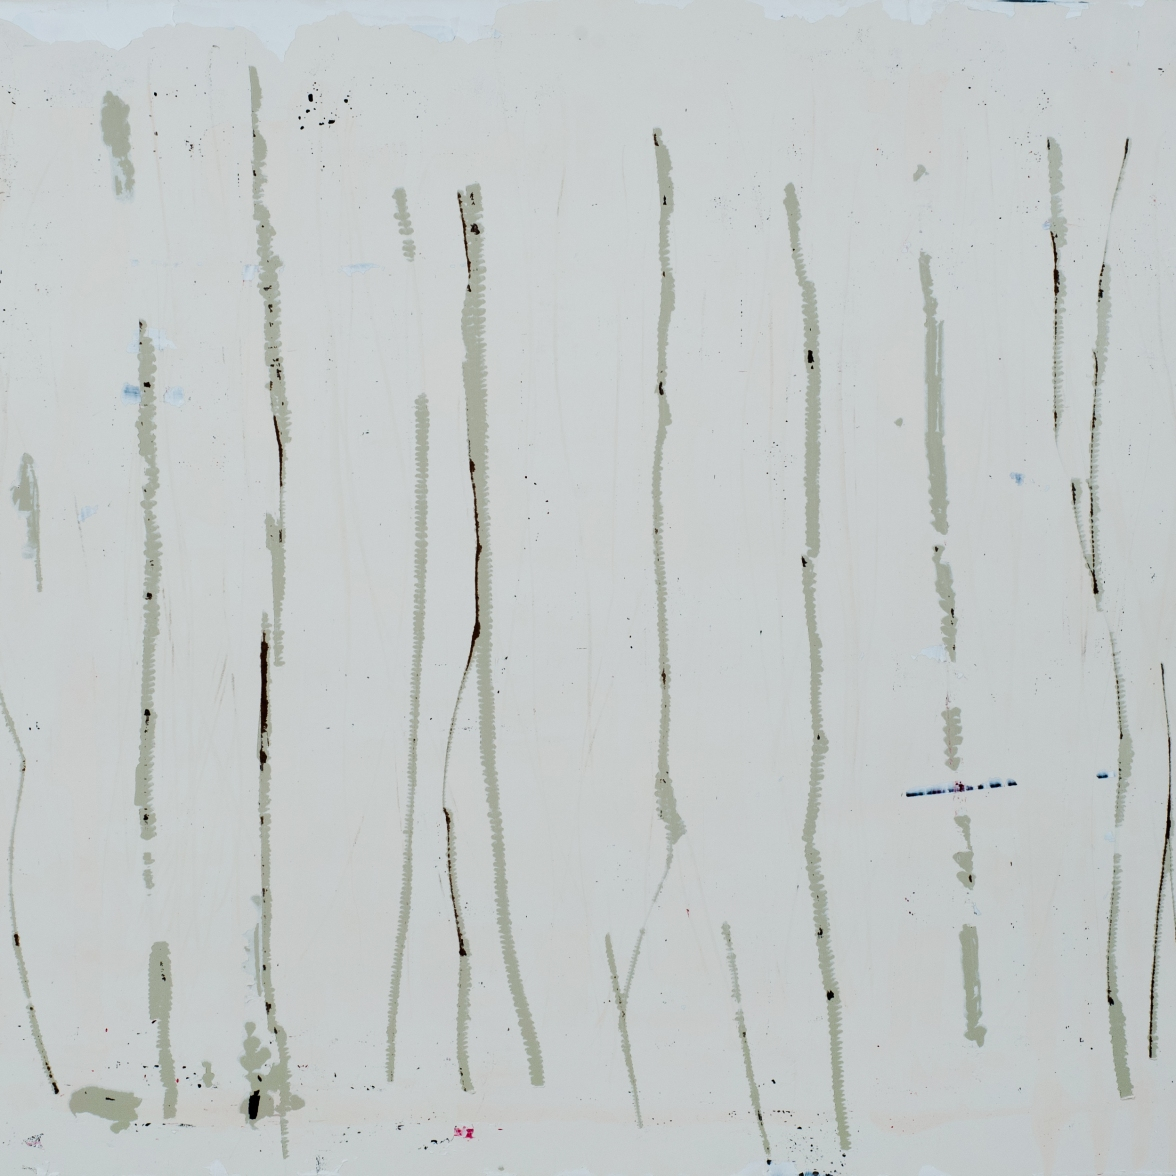 Verticals on Wood White 2013 16x20 in